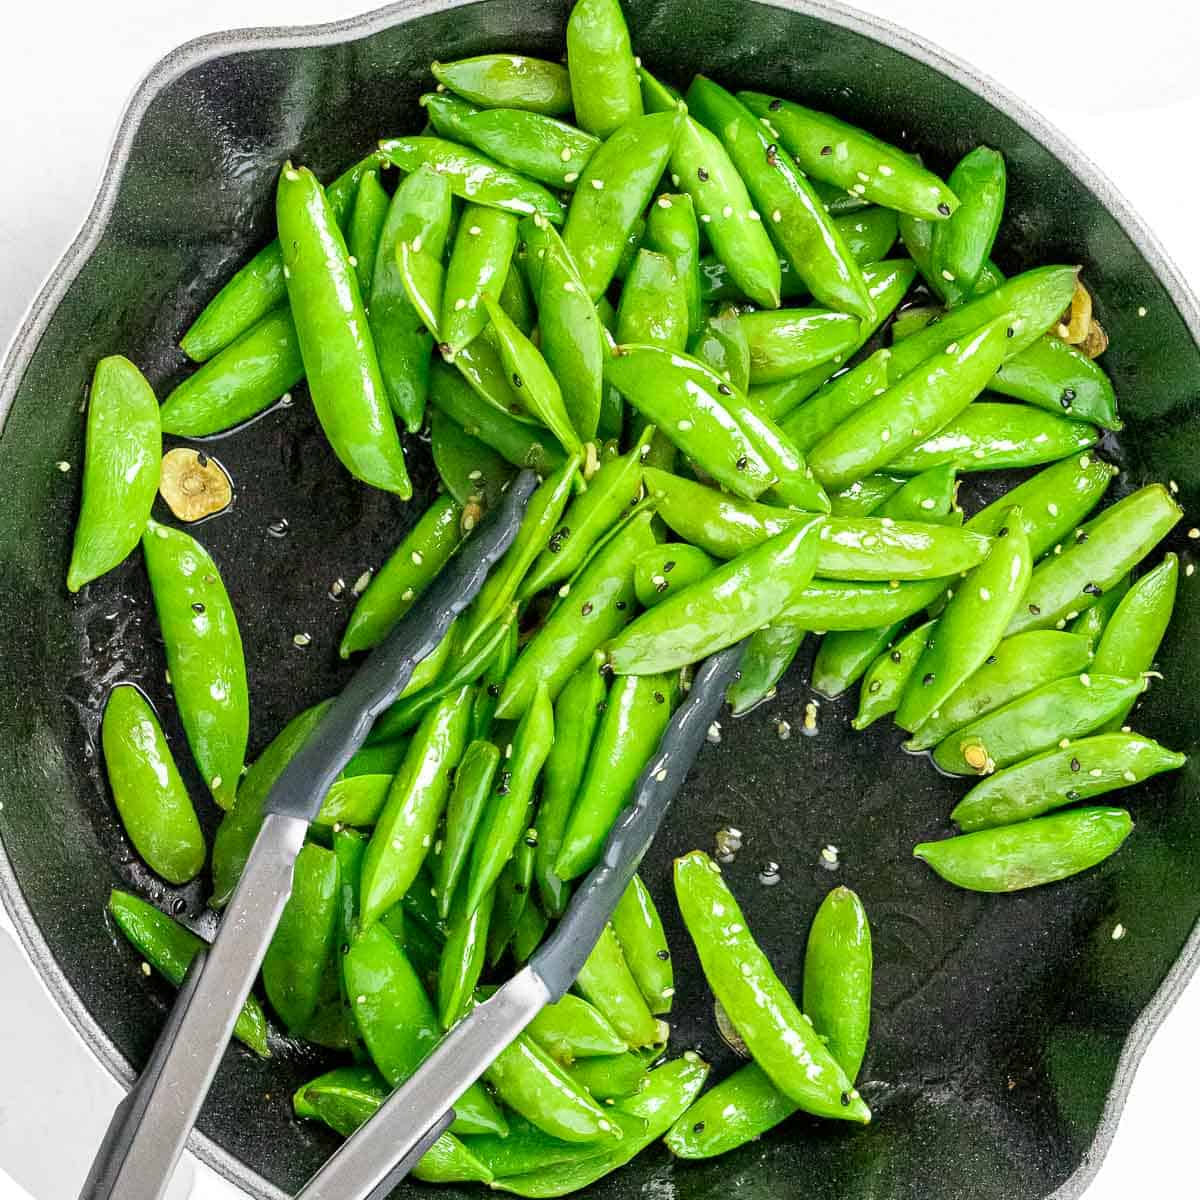 Stir fried sugar snap peas with garlic, black and white sesame seeds, and soy sauce in a dark pan with tongs.